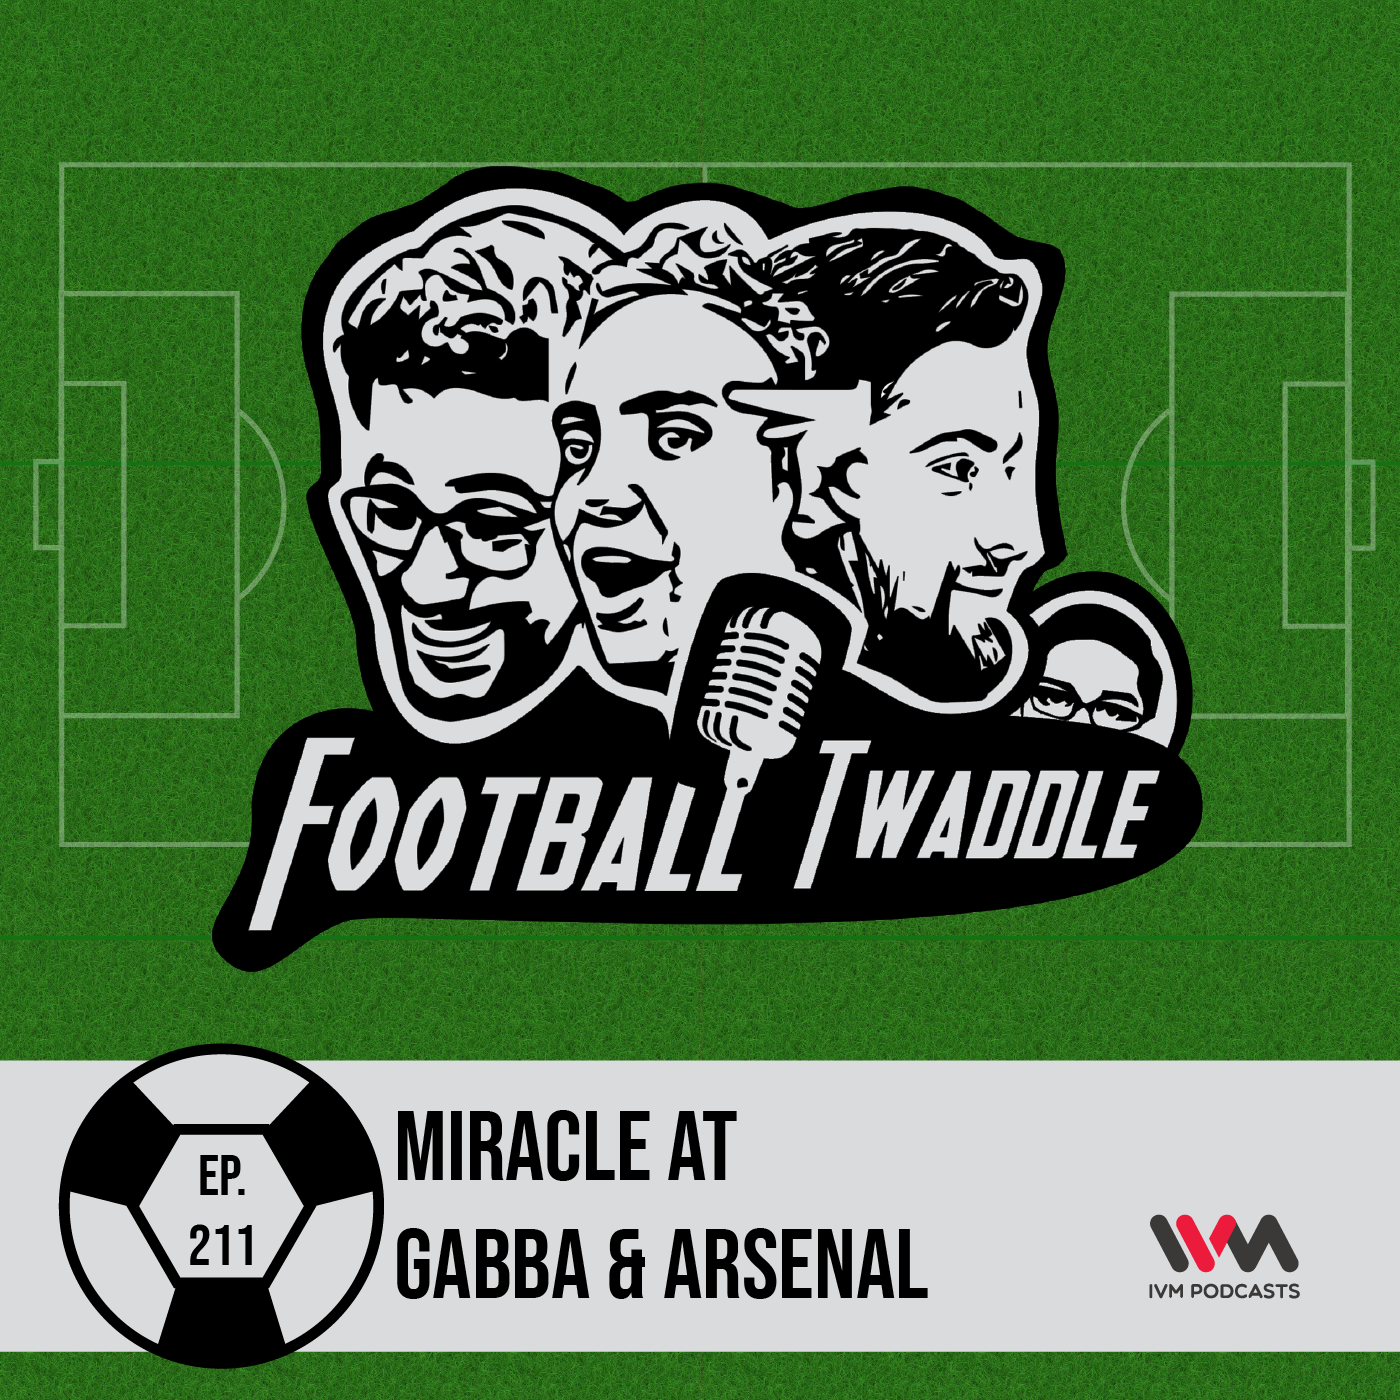 Miracle at Gabba & Arsenal